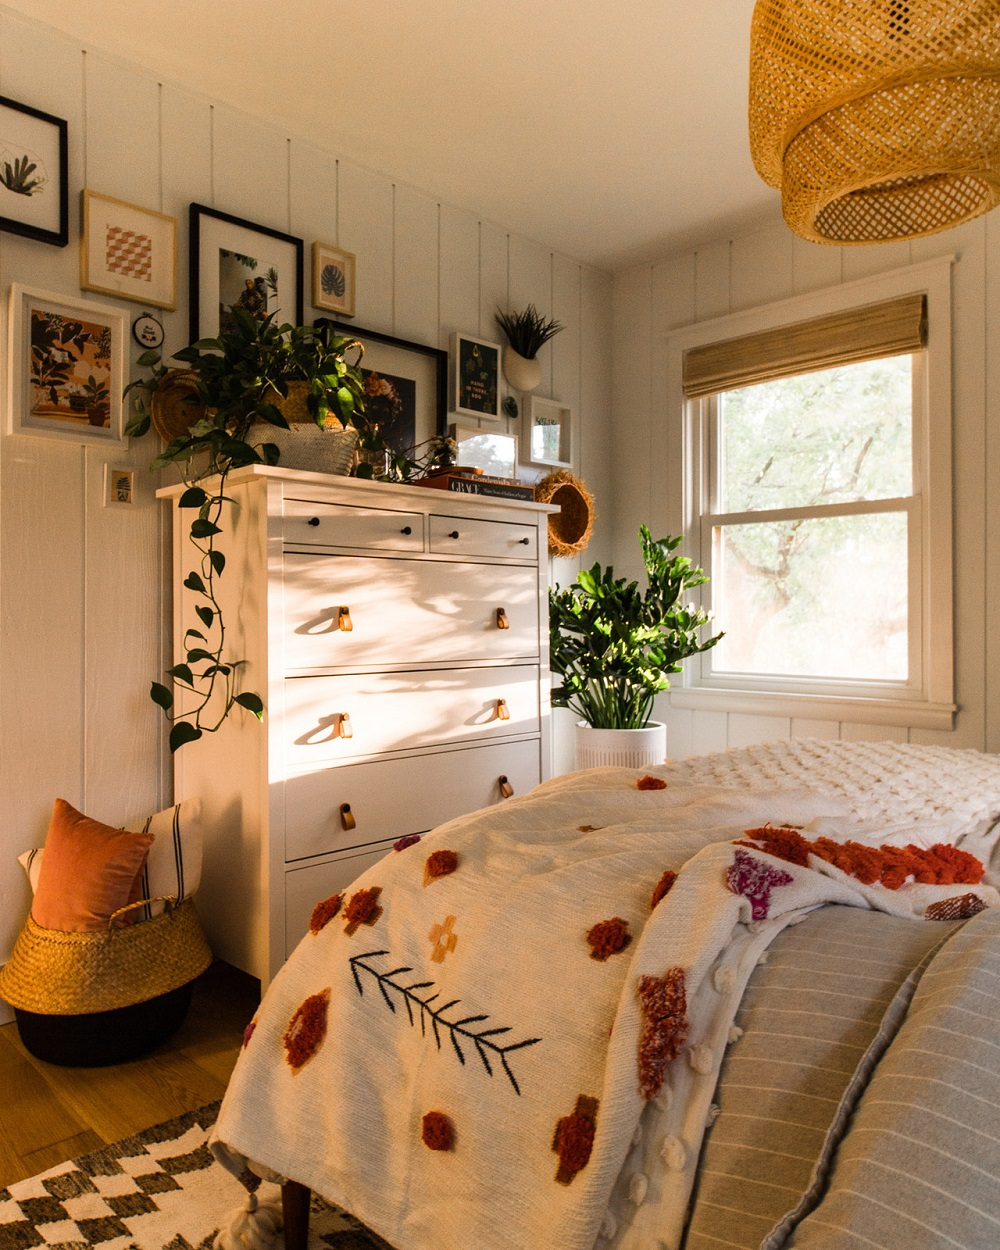 I'm in love with the natural light in this bedroom